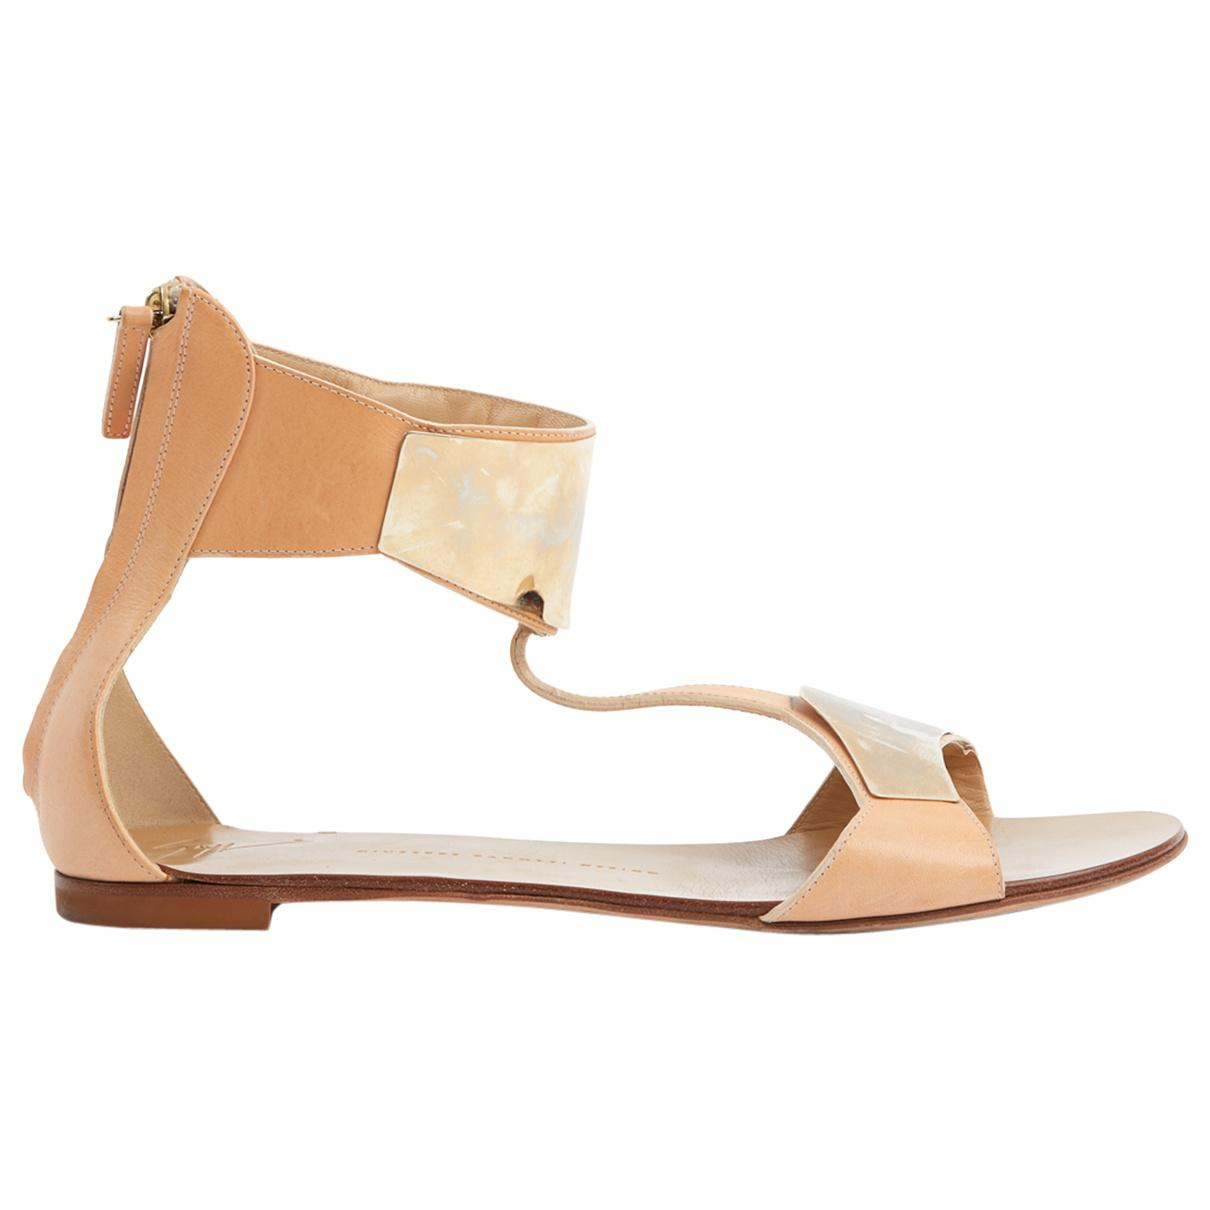 Pre-owned - Leather sandal Giuseppe Zanotti